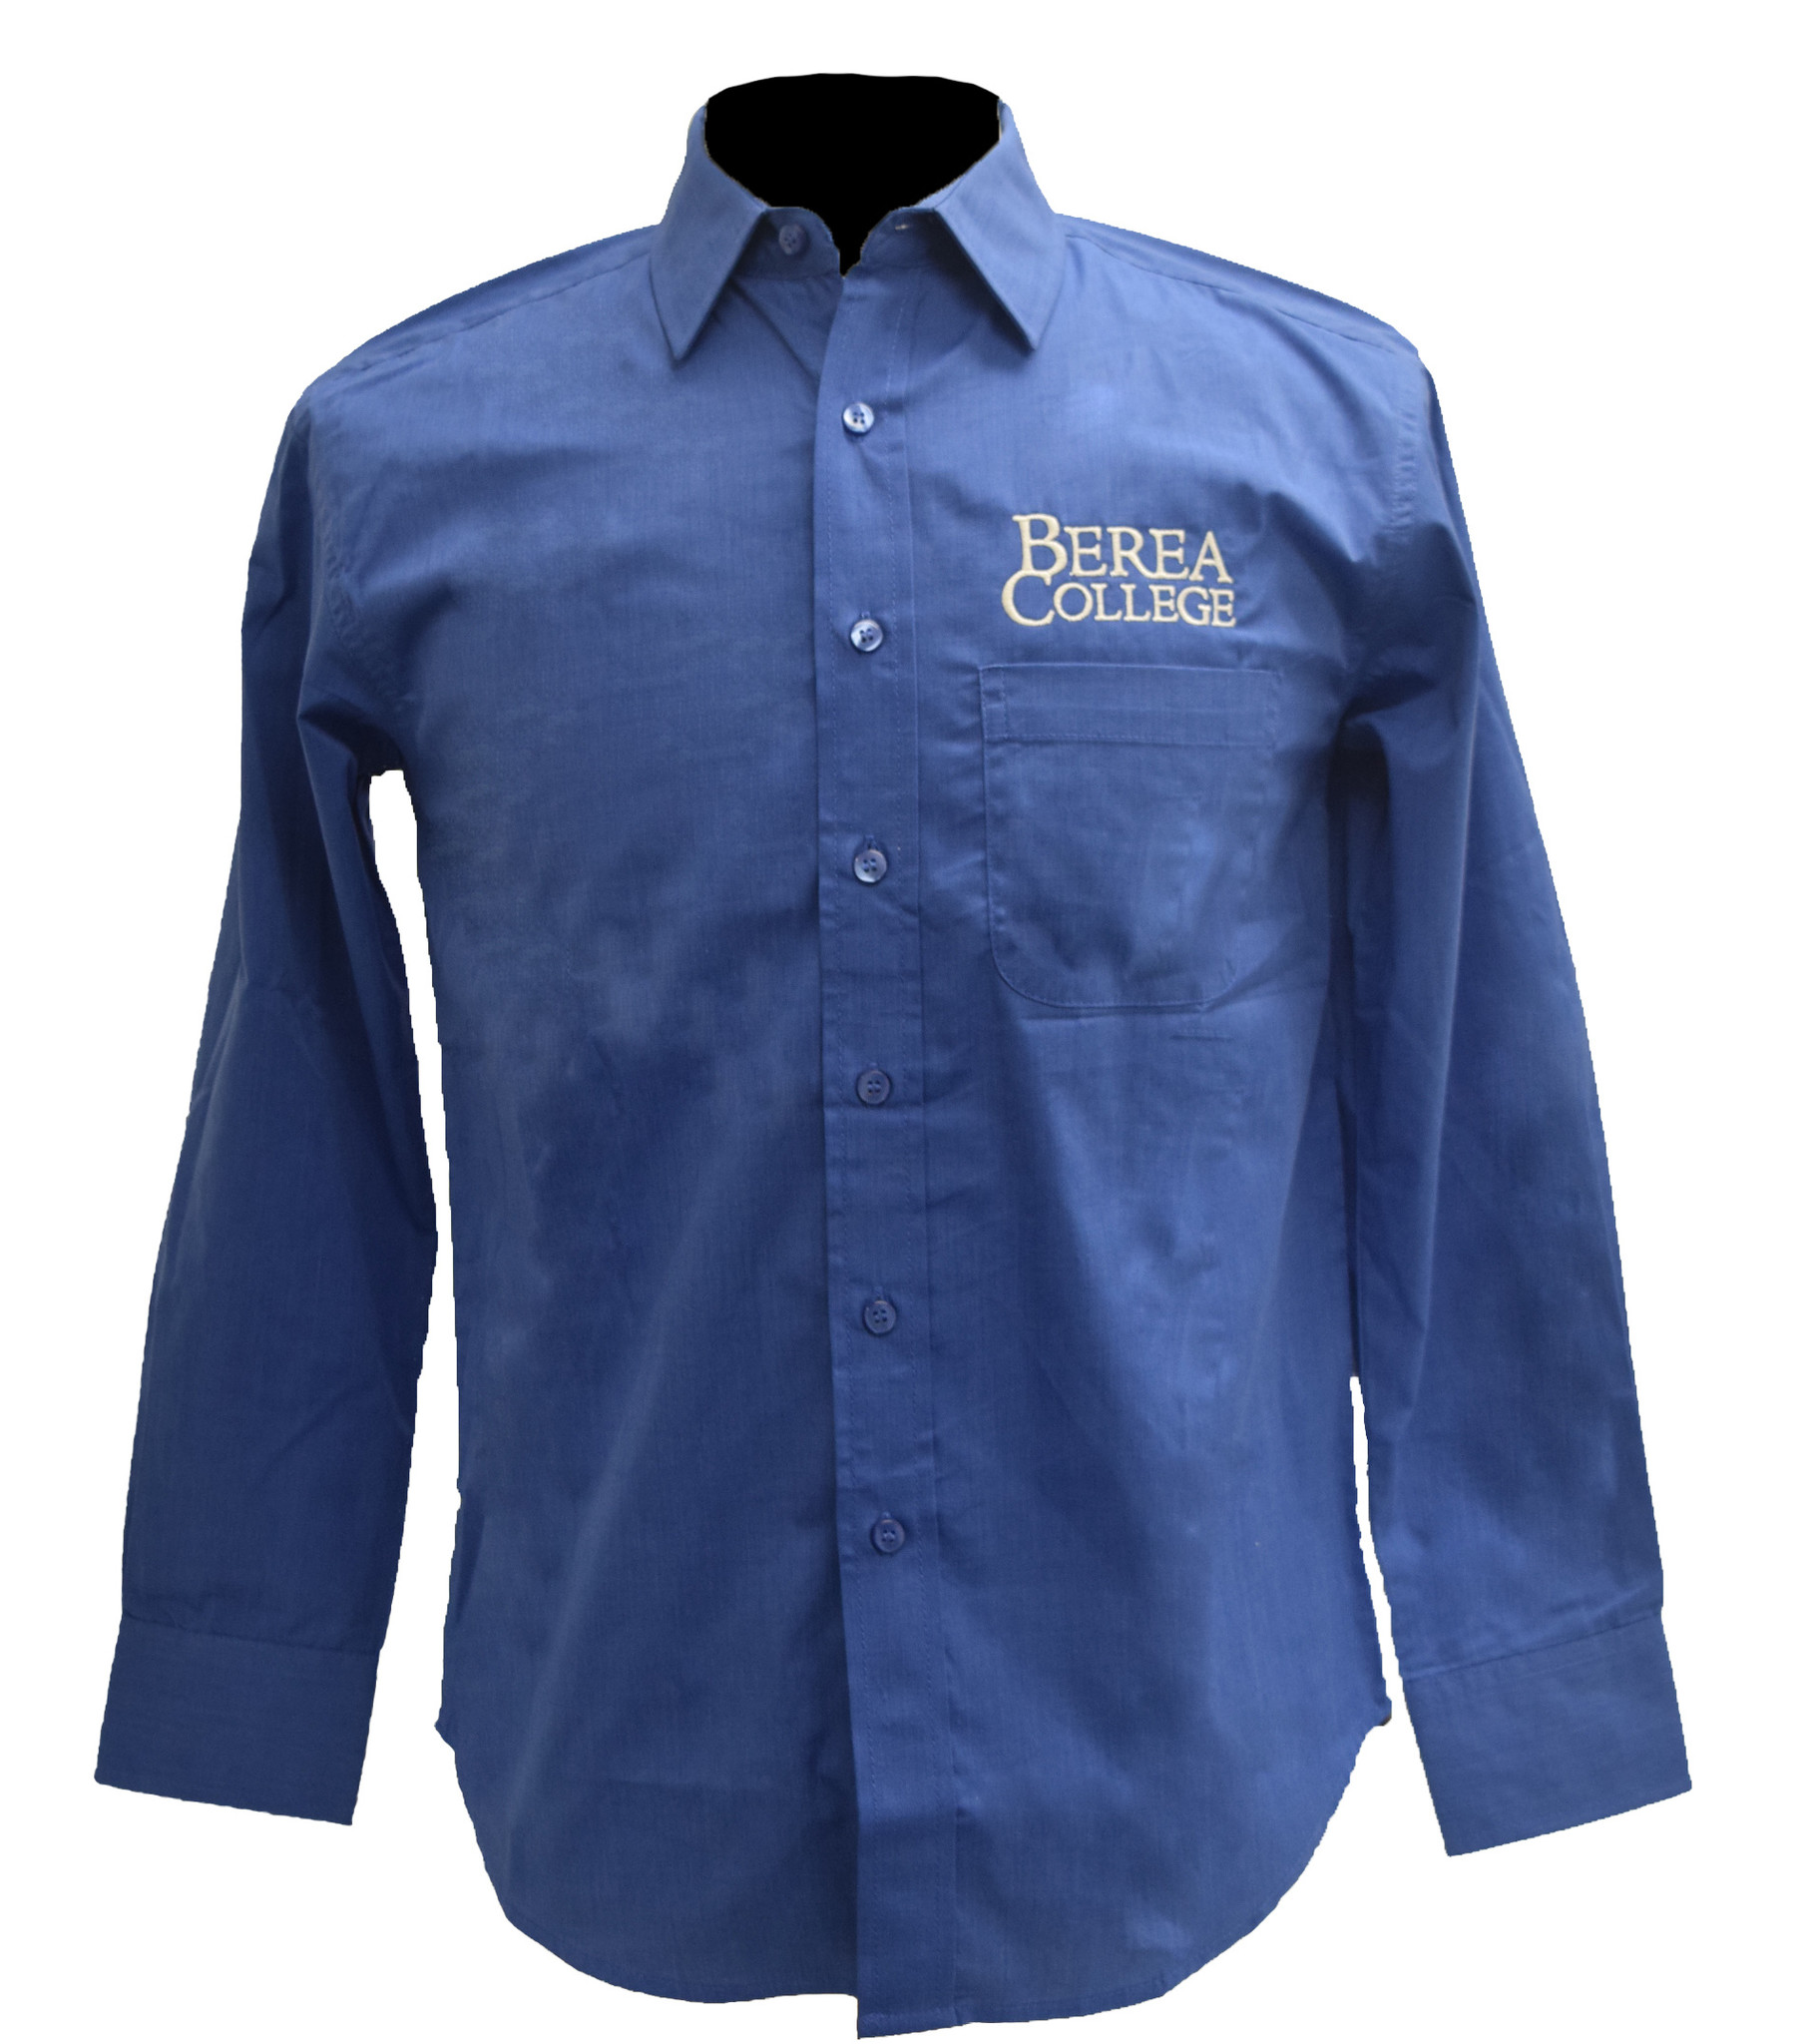 French Blue Berea College Dress Shirt-2